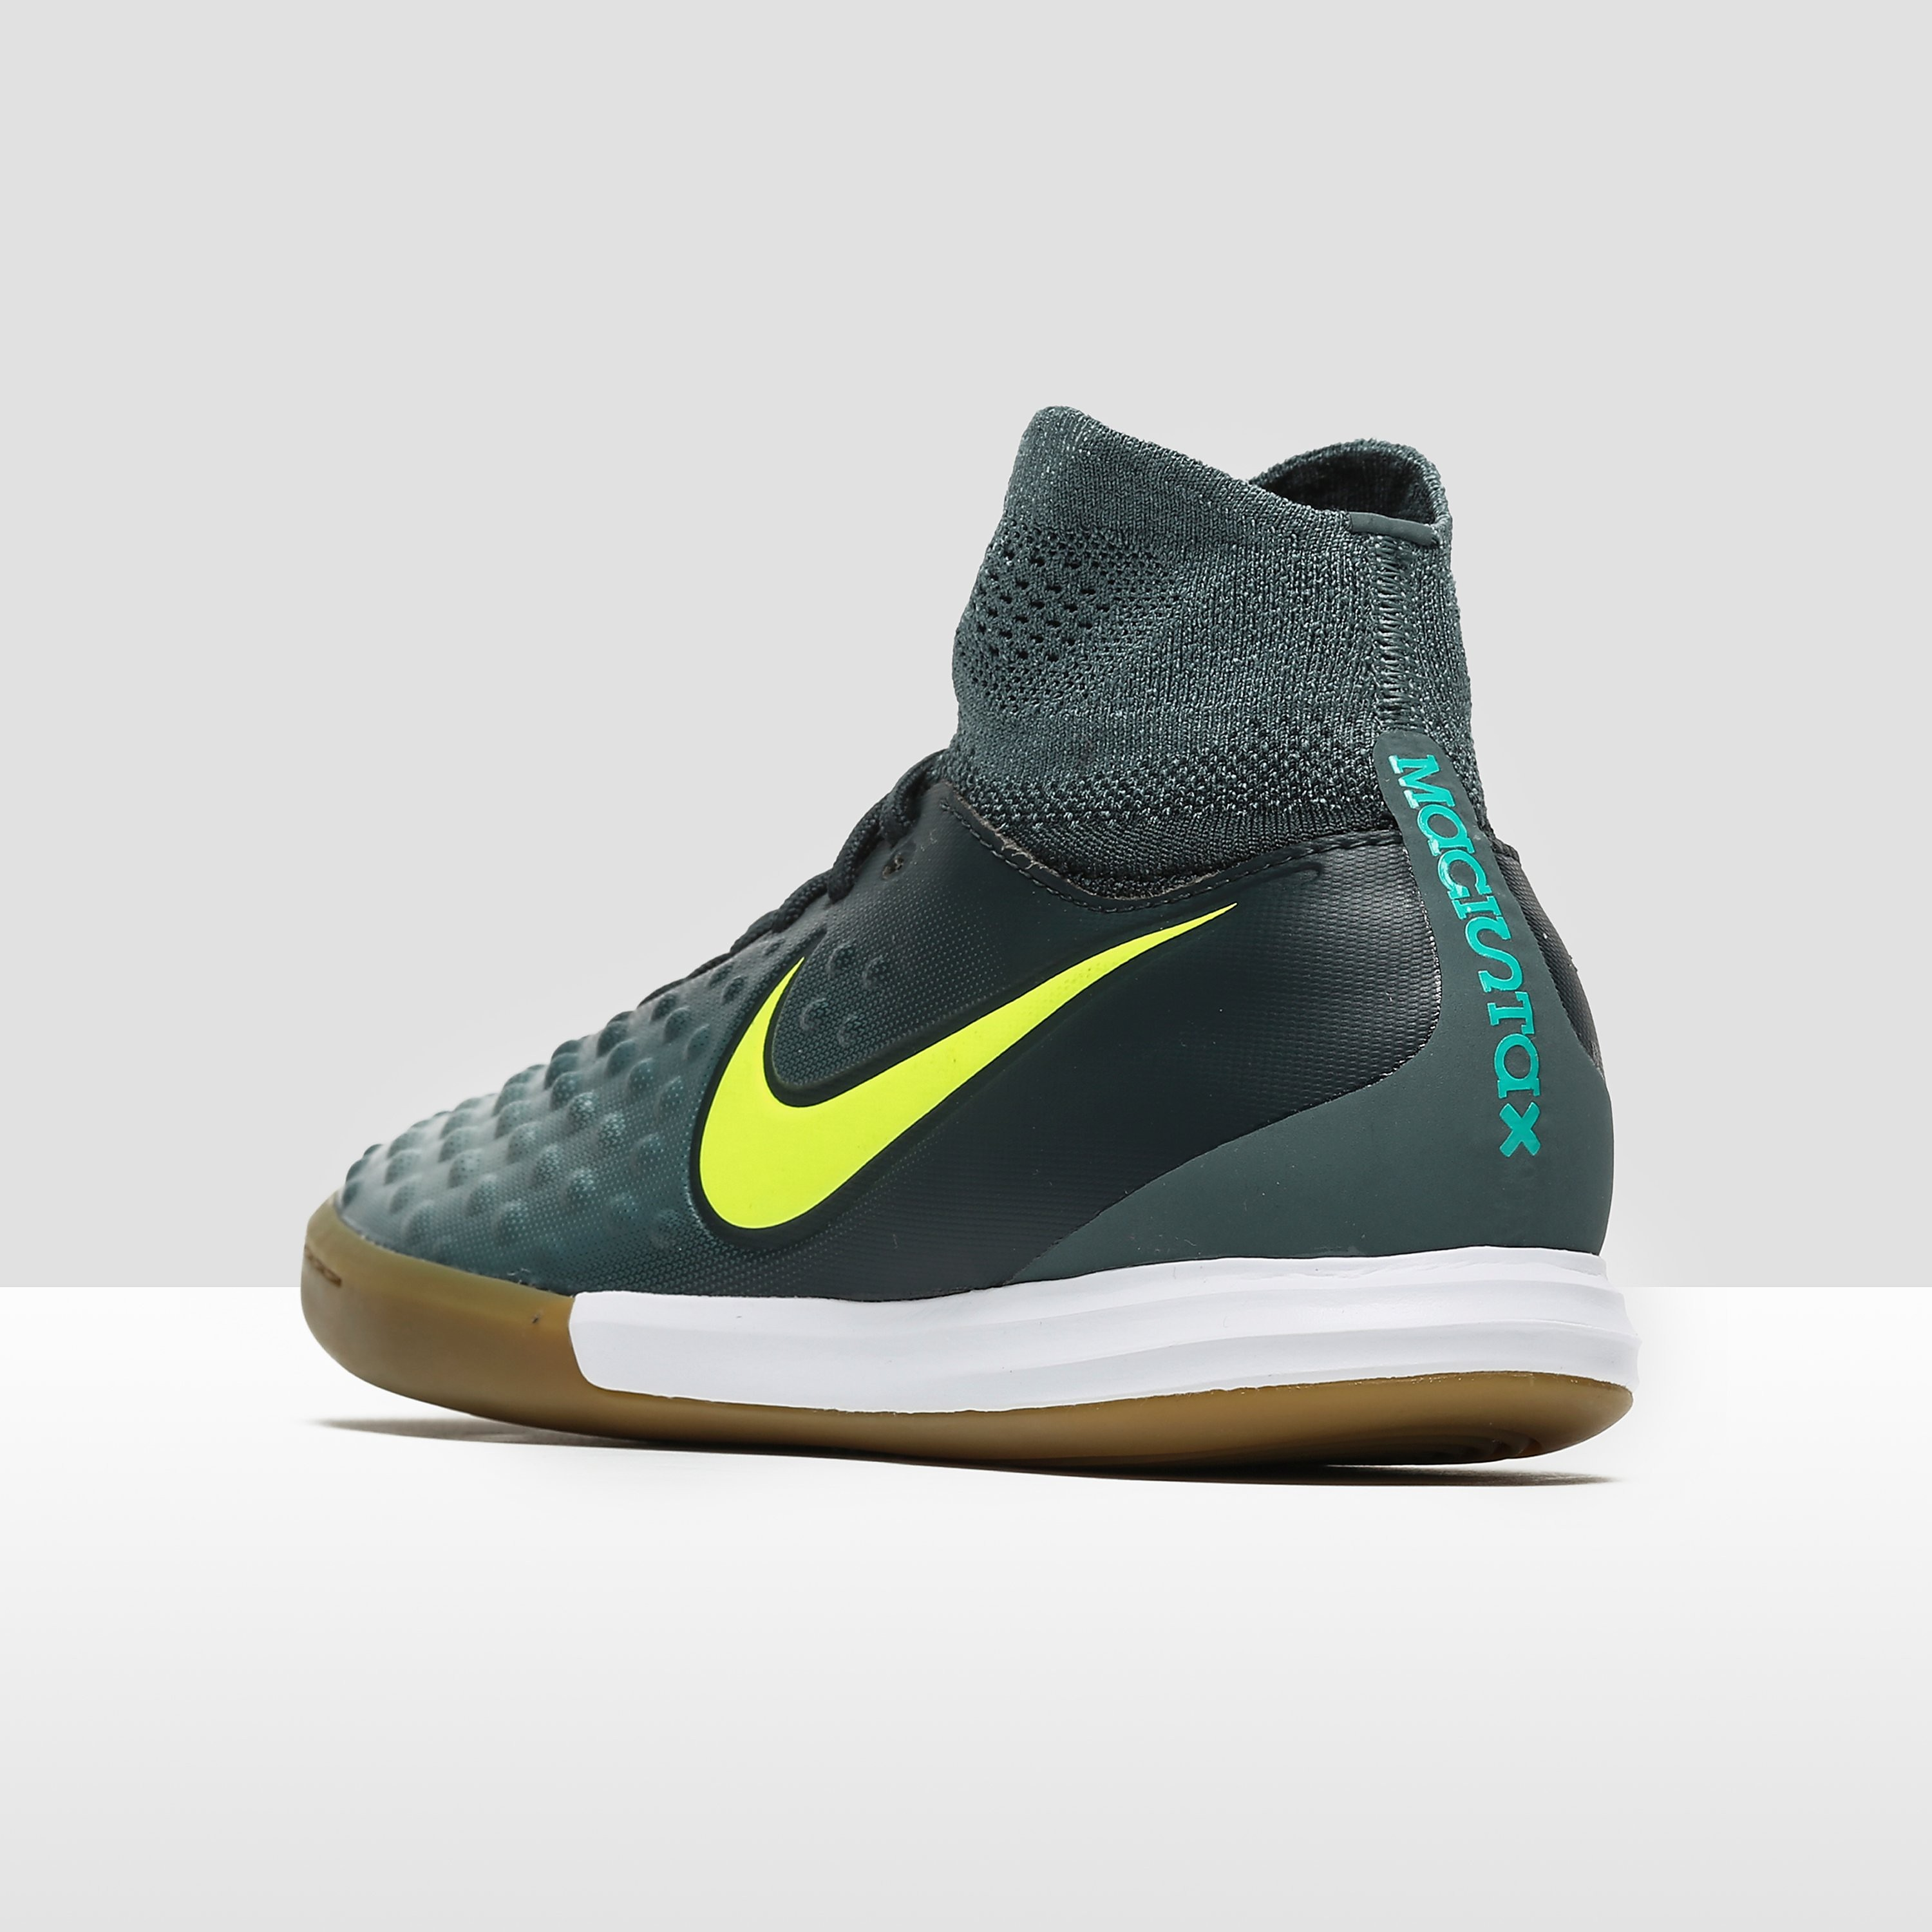 Nike Floodlight MagistaX Proximo II DF IC Junior